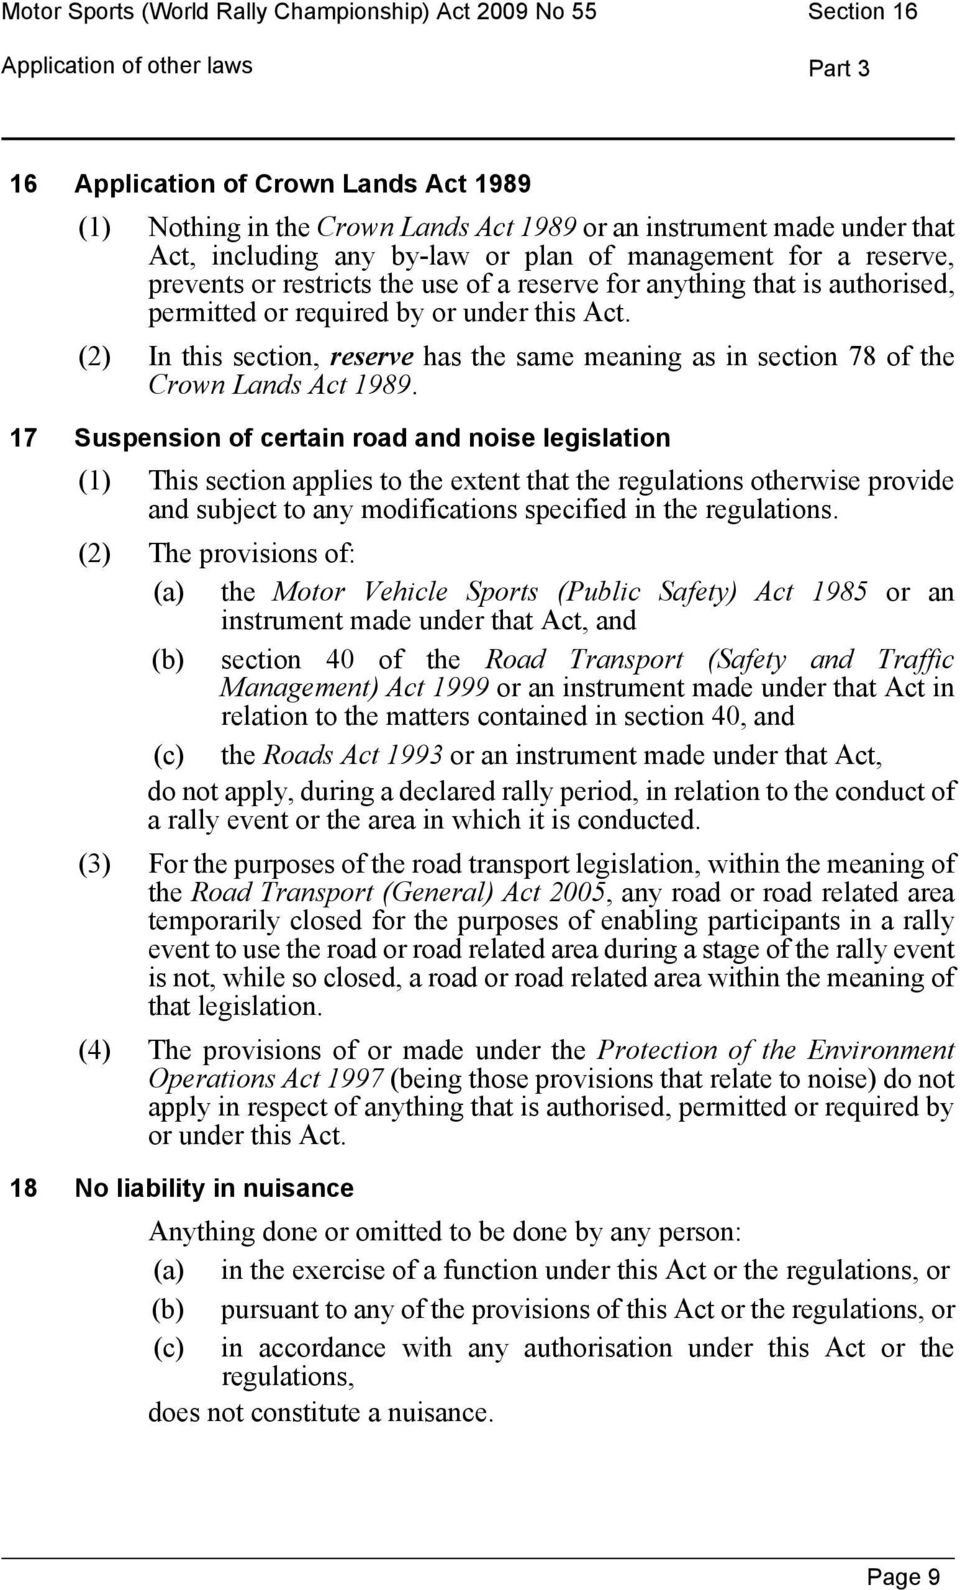 (2) In this section, reserve has the same meaning as in section 78 of the Crown Lands Act 1989.